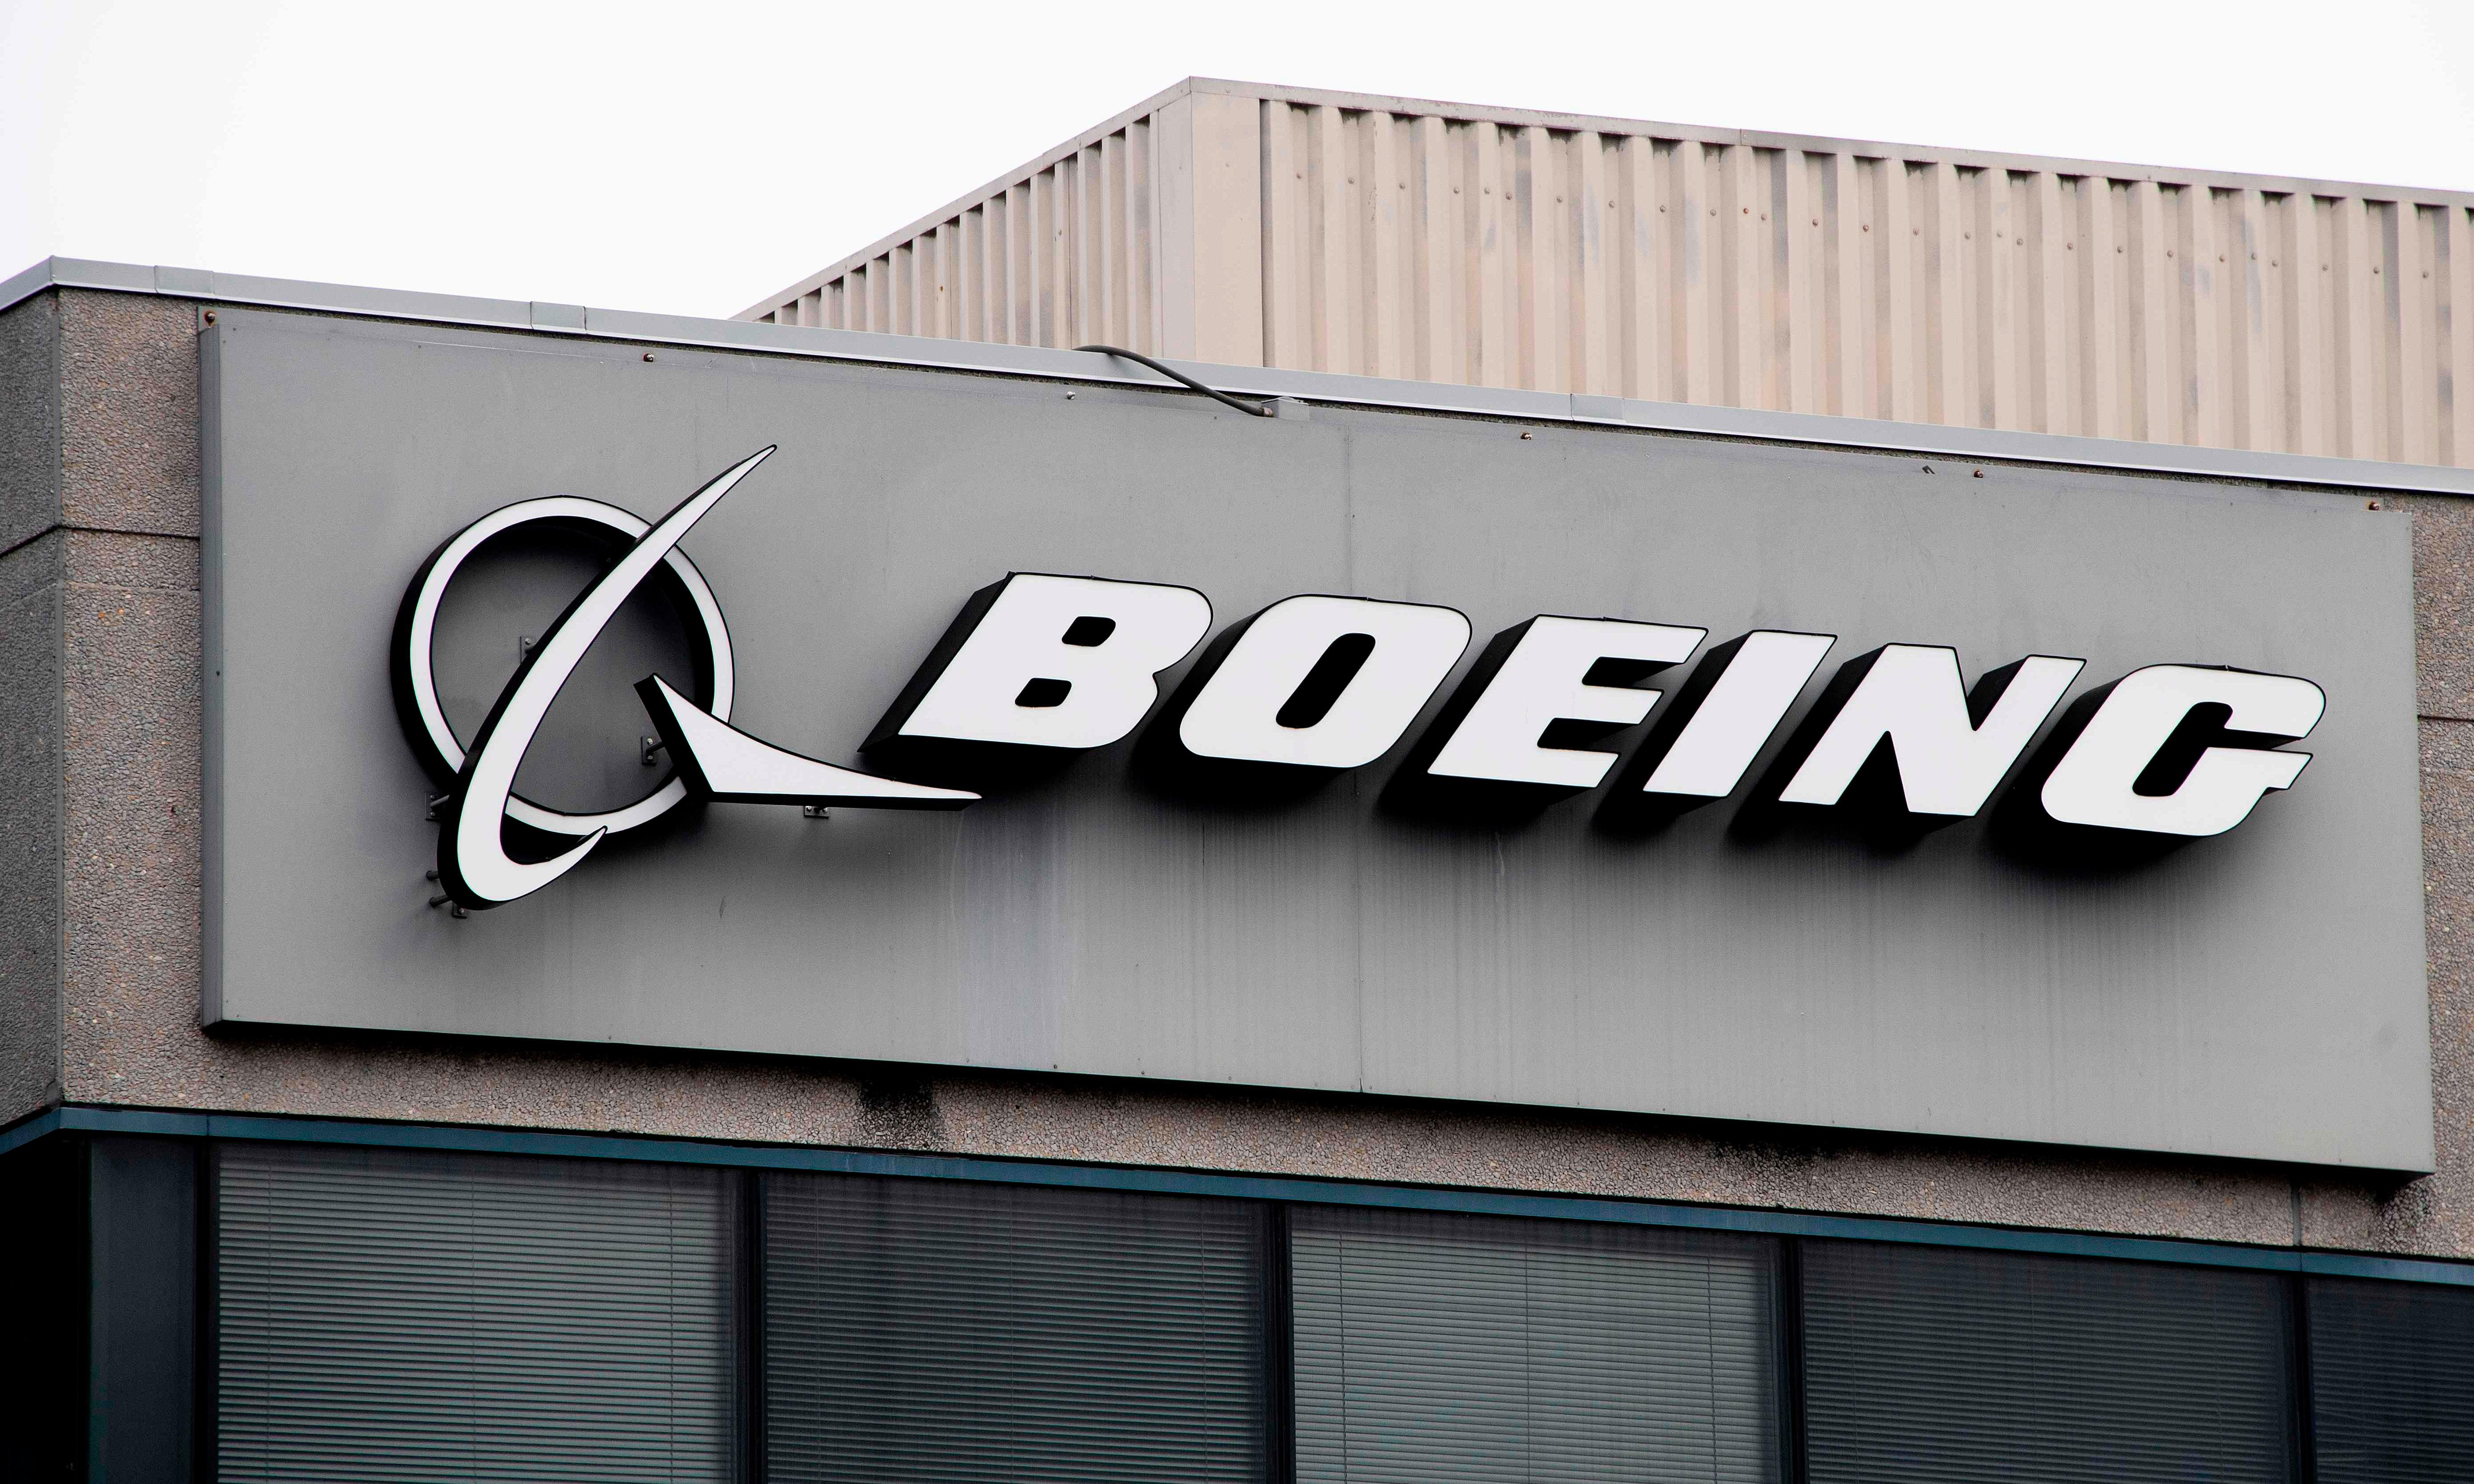 Boeing to take $4.9bn charge due to grounding of 737 Max jets